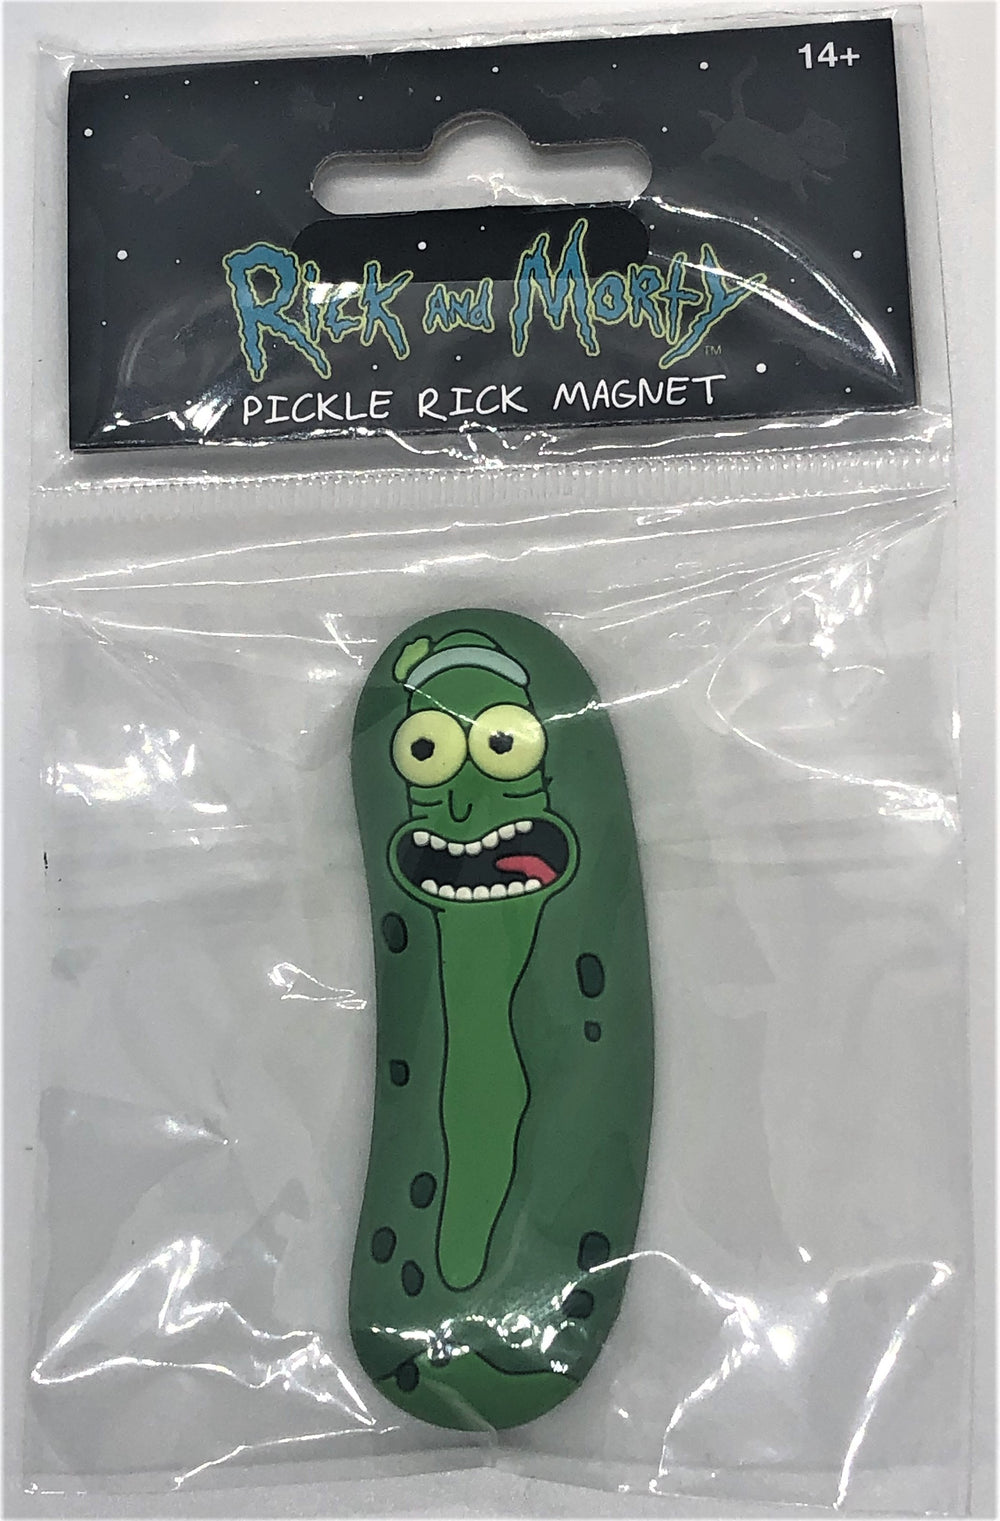 Rick And Morty Pickle Rick Magnet